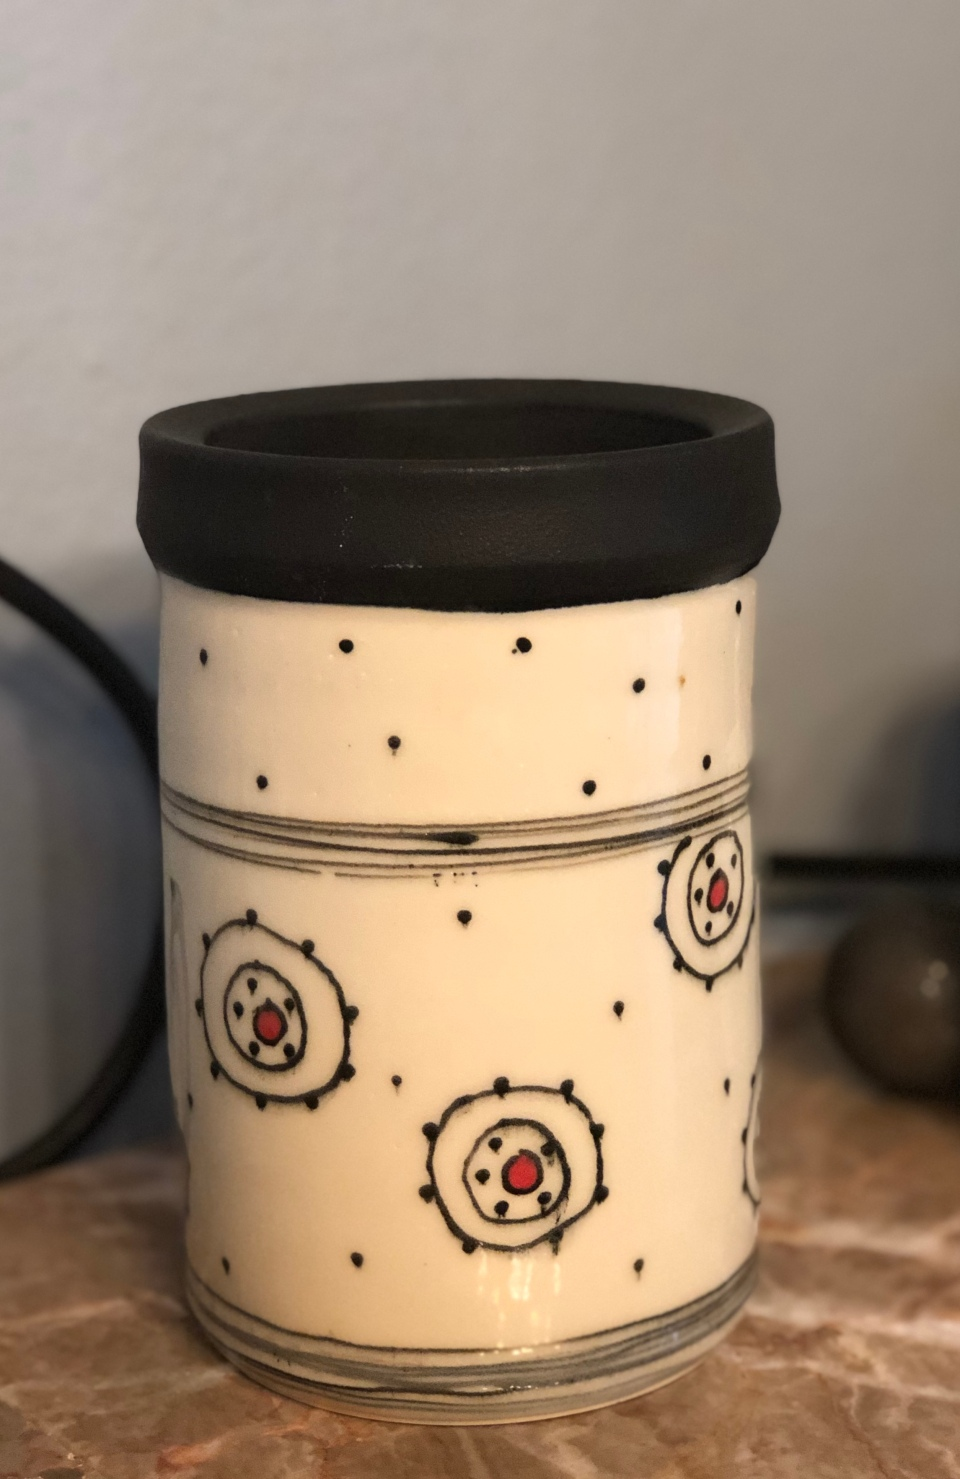 Pottery wine cooler with red dot and organic circles in black